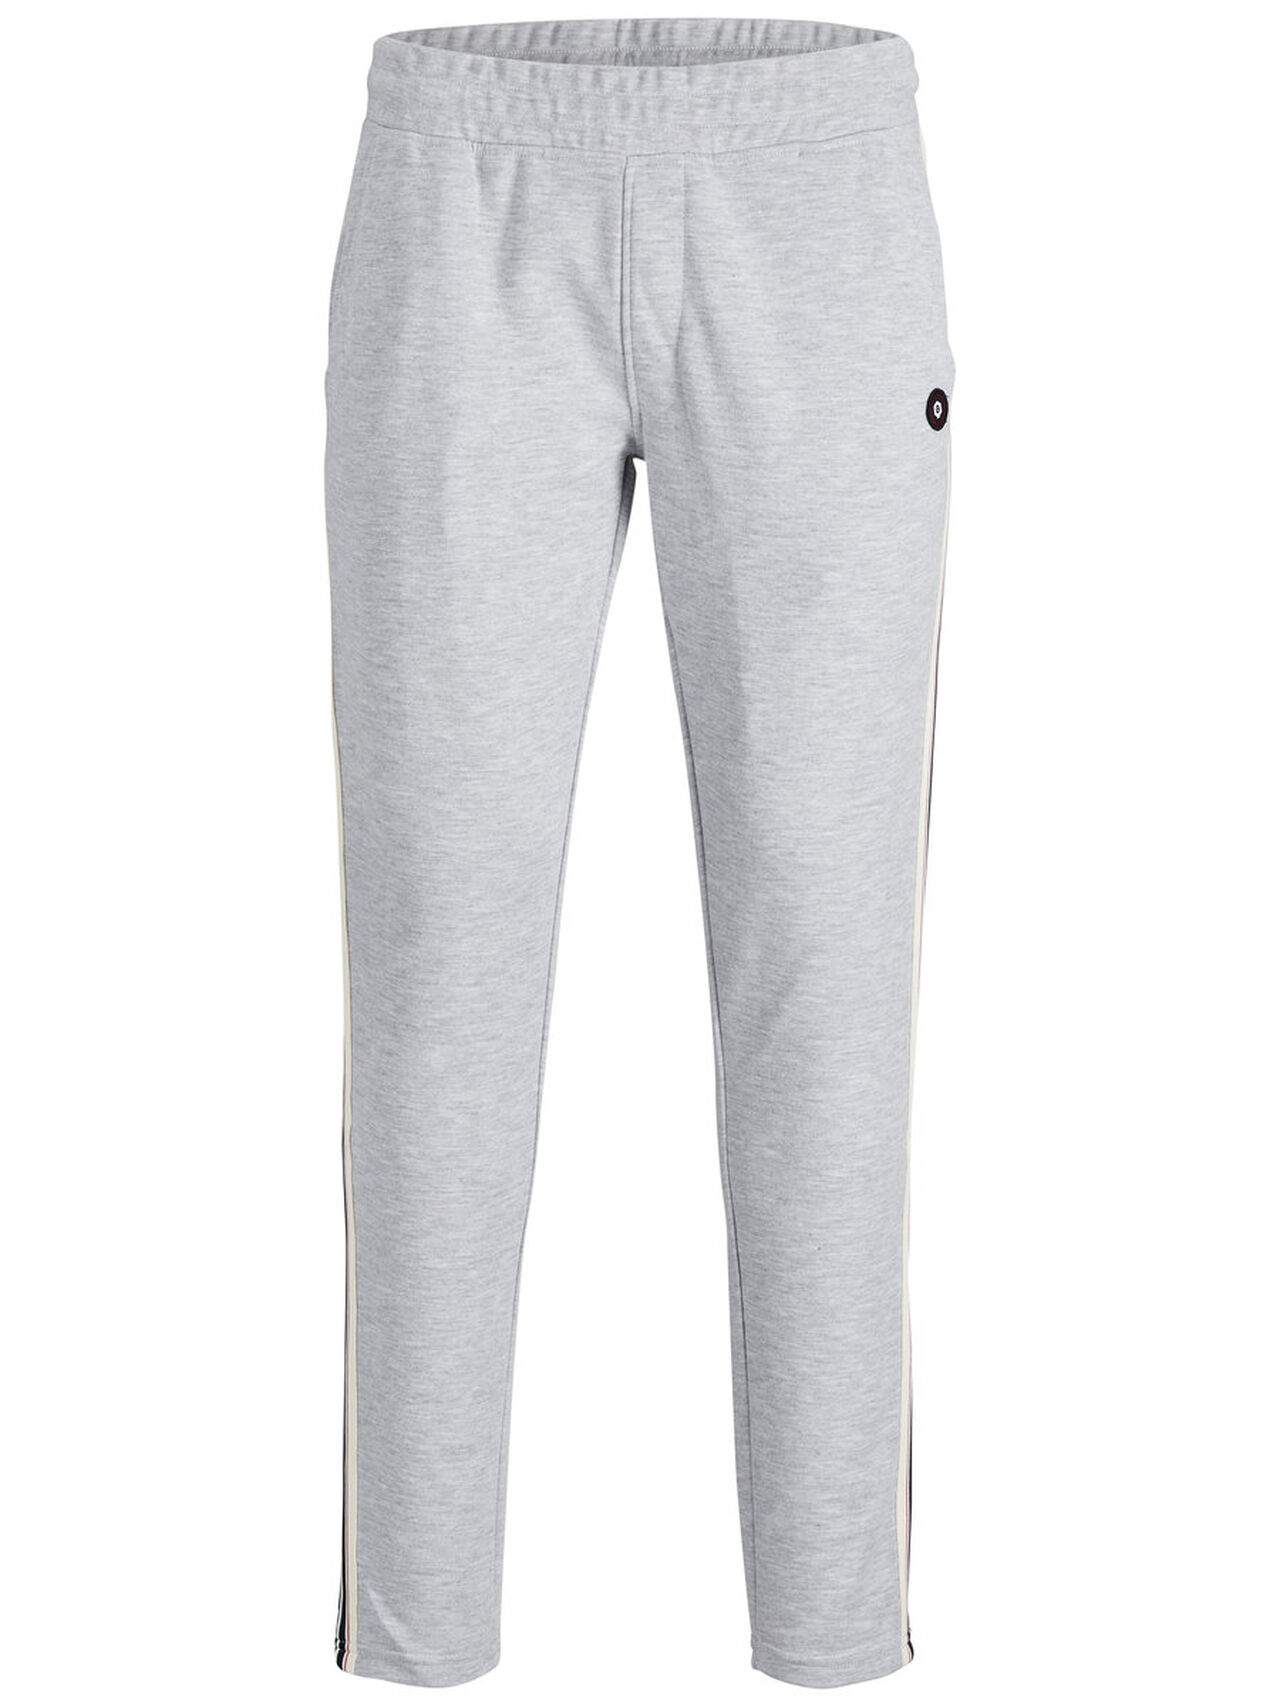 JACK & JONES Side Striped Sweat Pants Men Grey